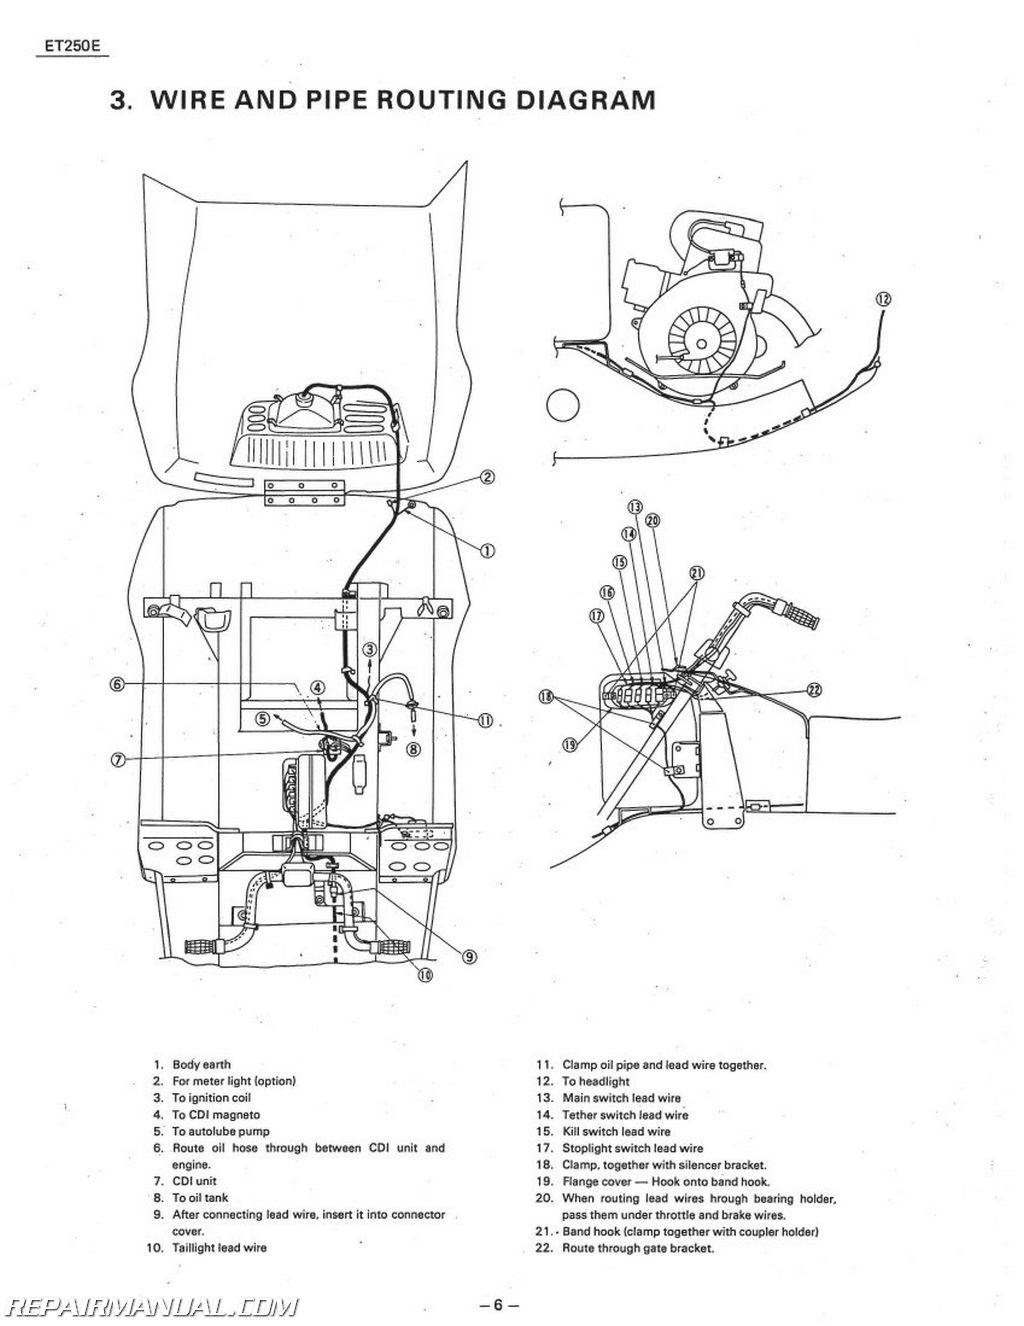 1978-1981 Yamaha Enticer ET250 Snowmobile Service Manual